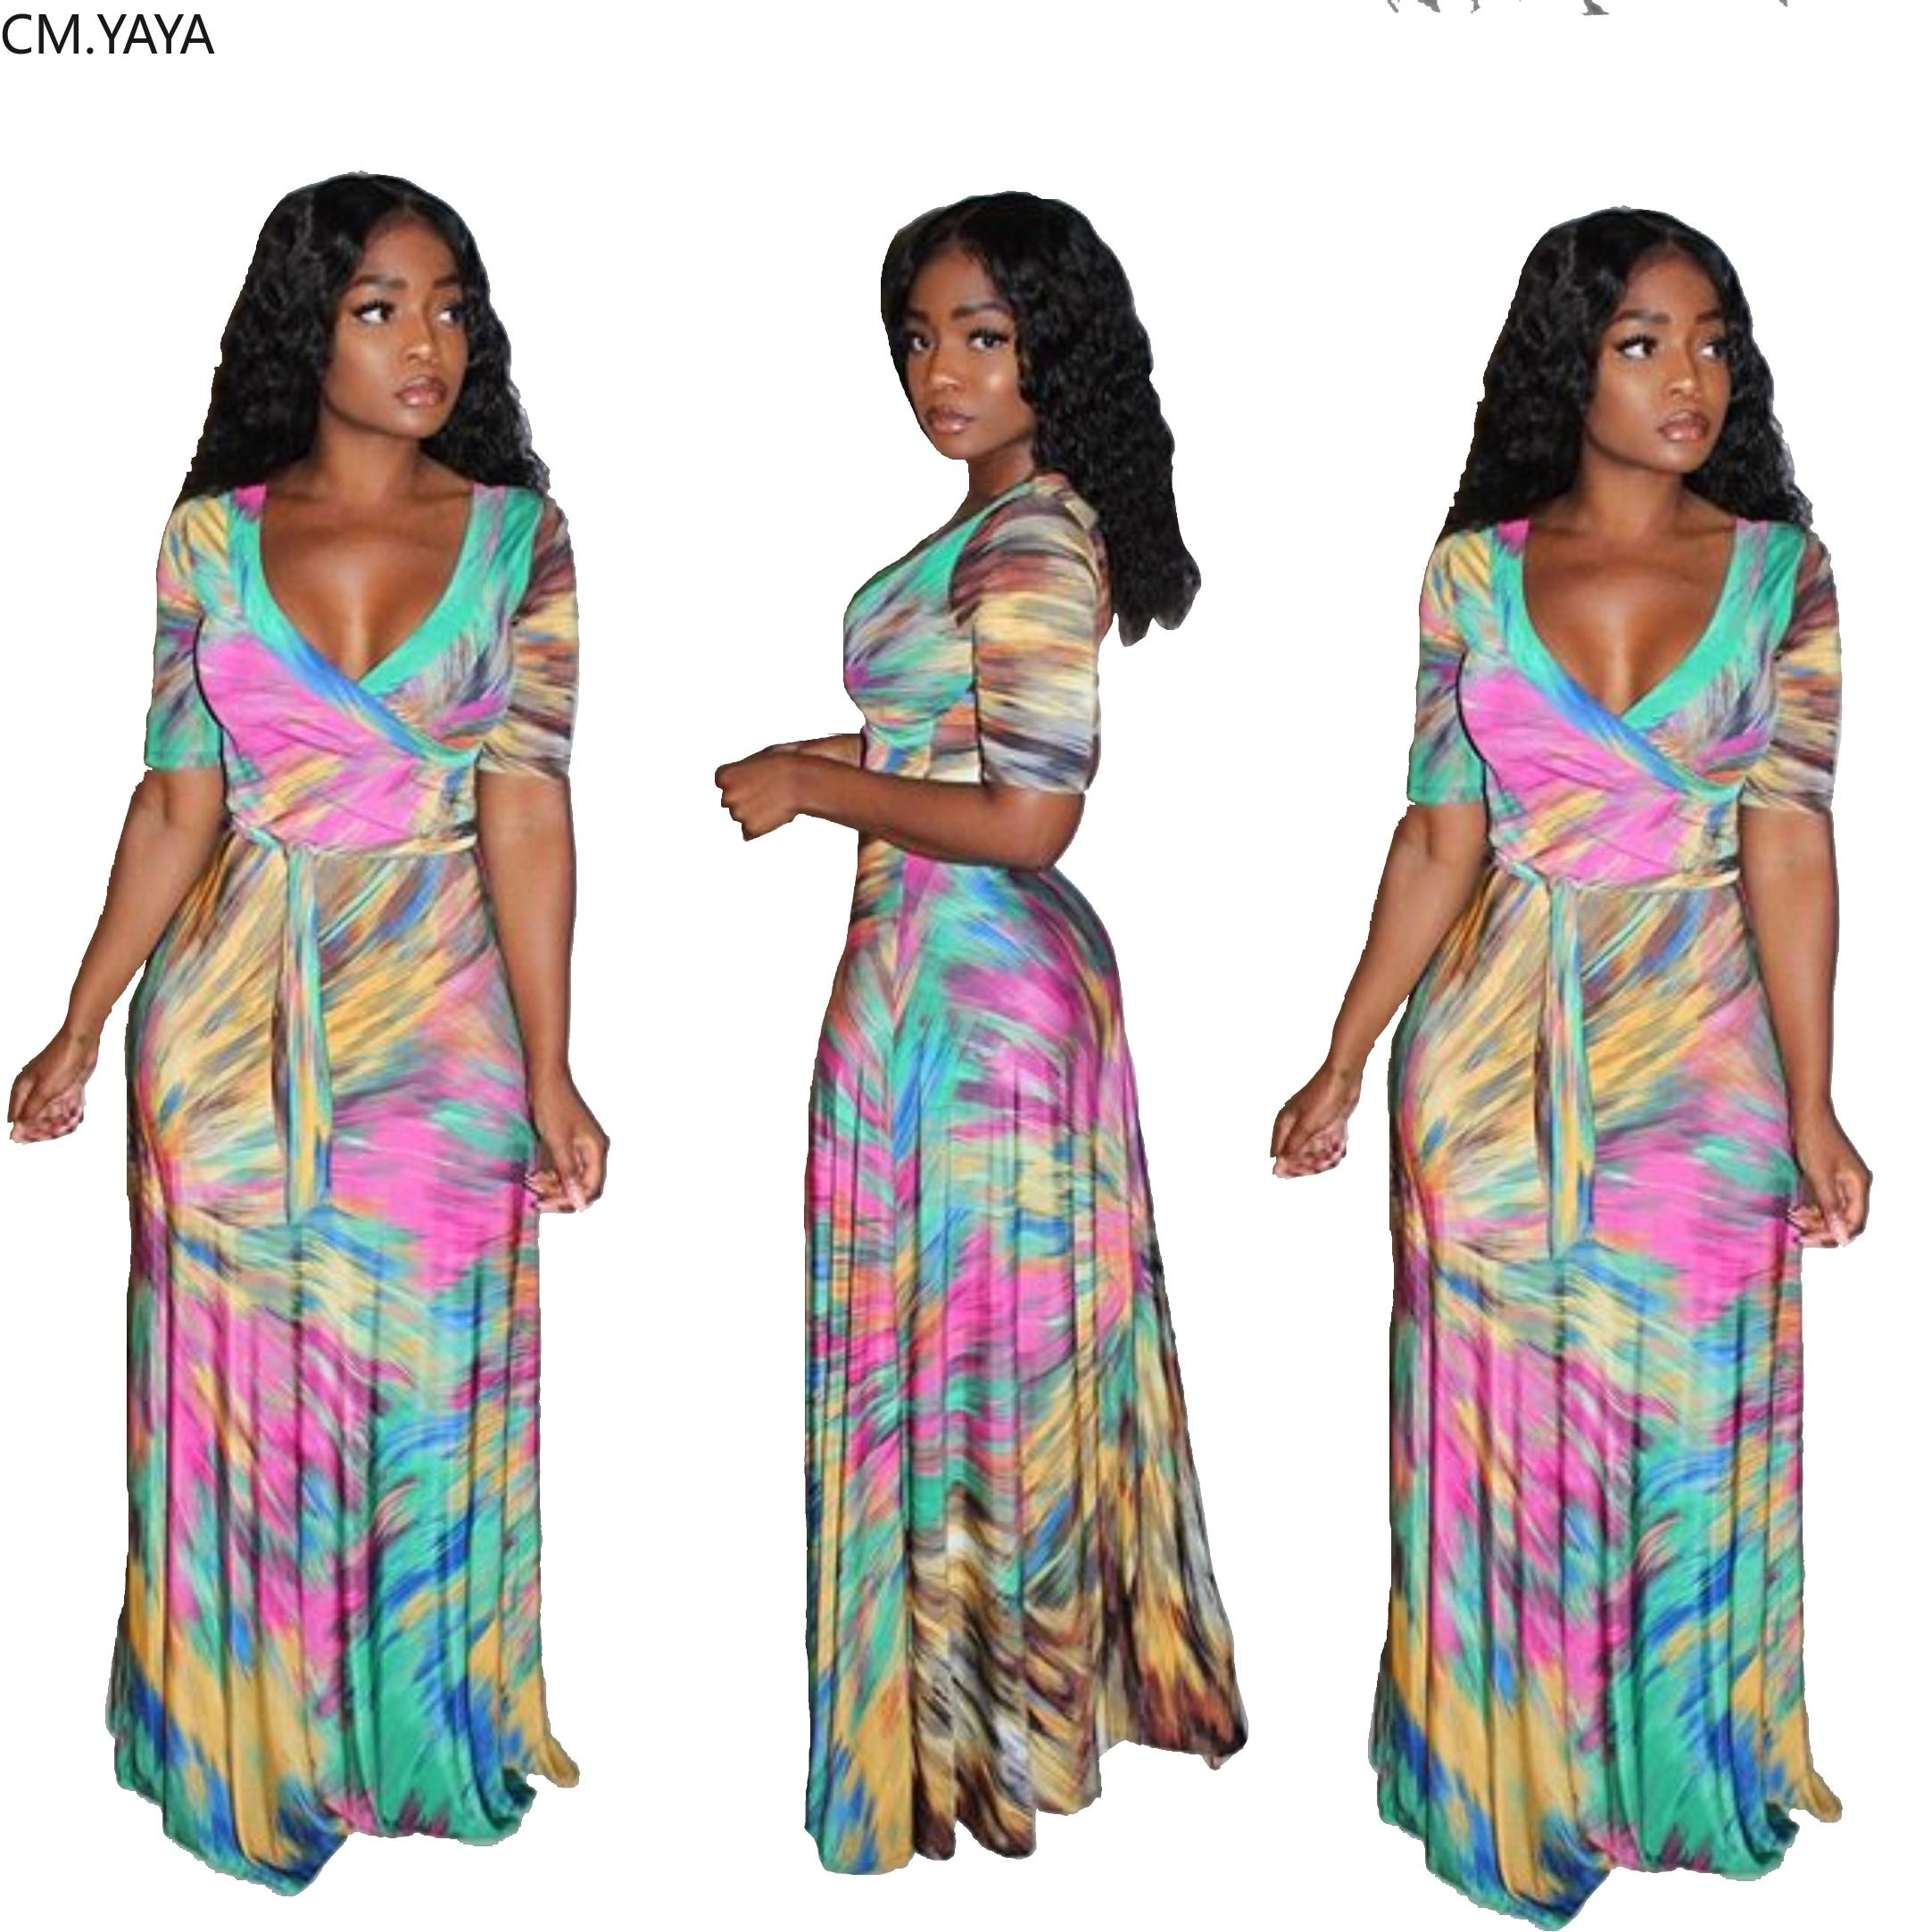 Femmes Robe Paisley Tie Dye Imprimer V-cou Maxi robe stretch à manches courtes moulante Fit Flare Nuit Robes longues Robes